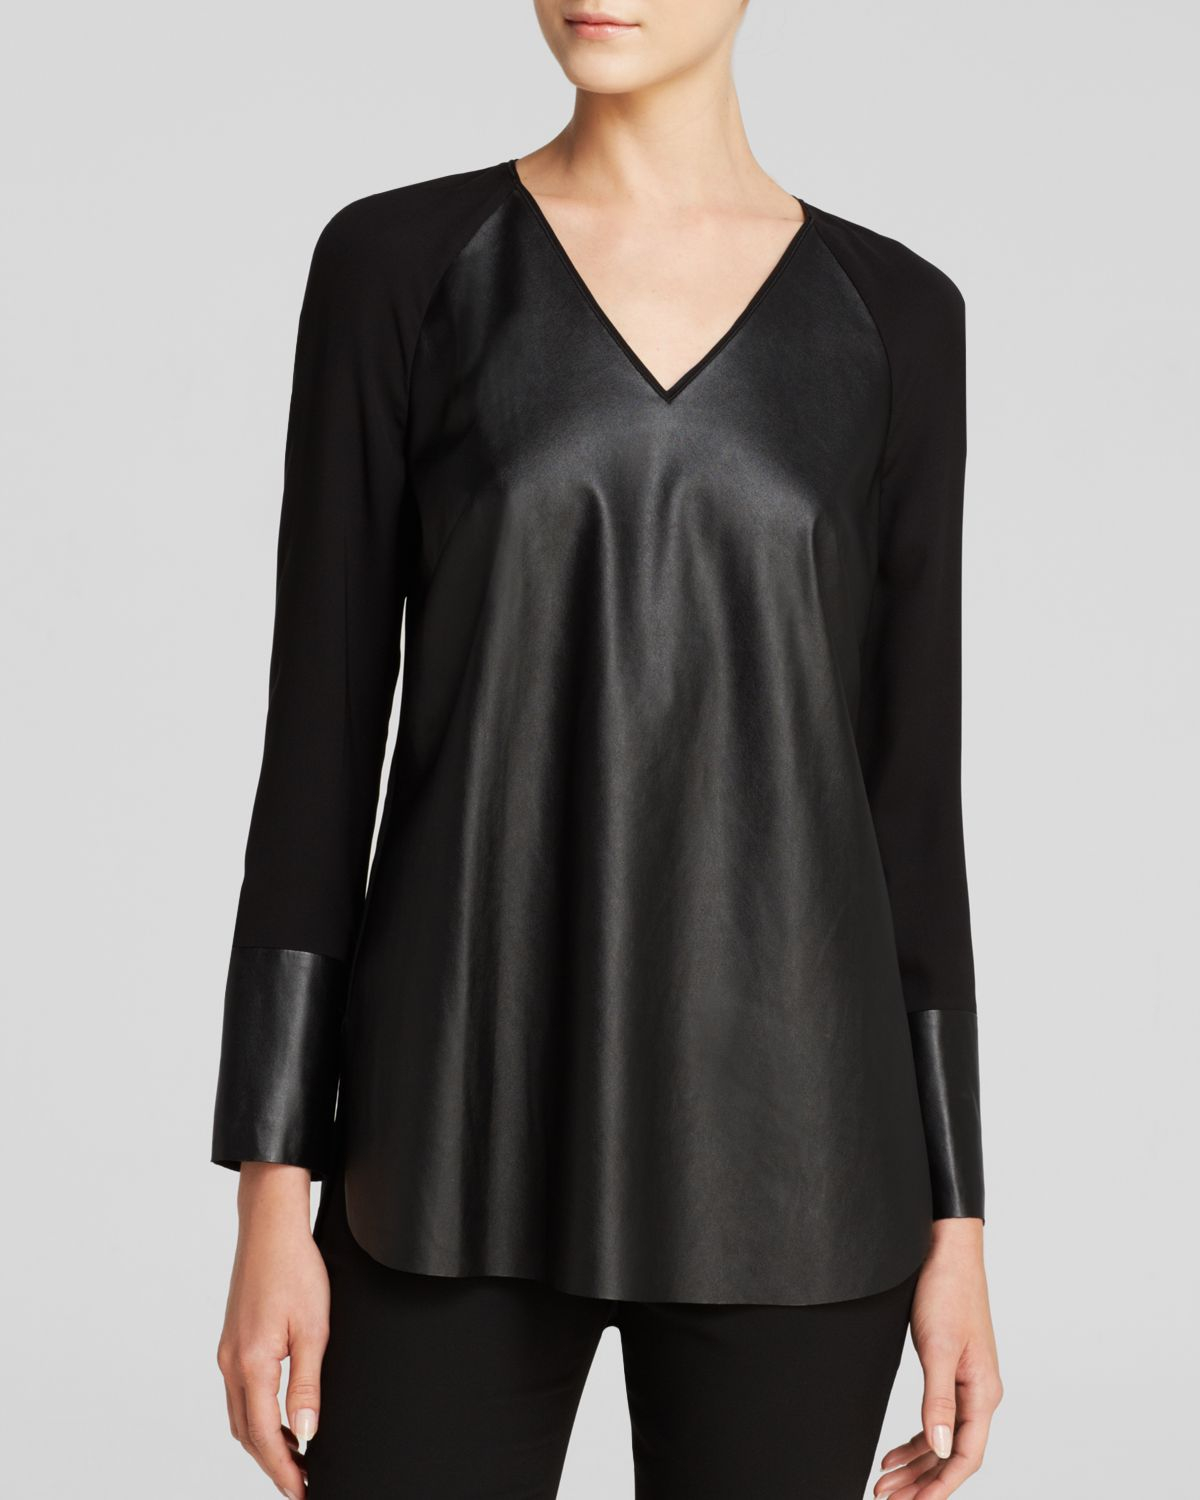 148 Best Images About Fingernail Art On Pinterest: Lafayette 148 New York Shae Faux Leather Top In Black